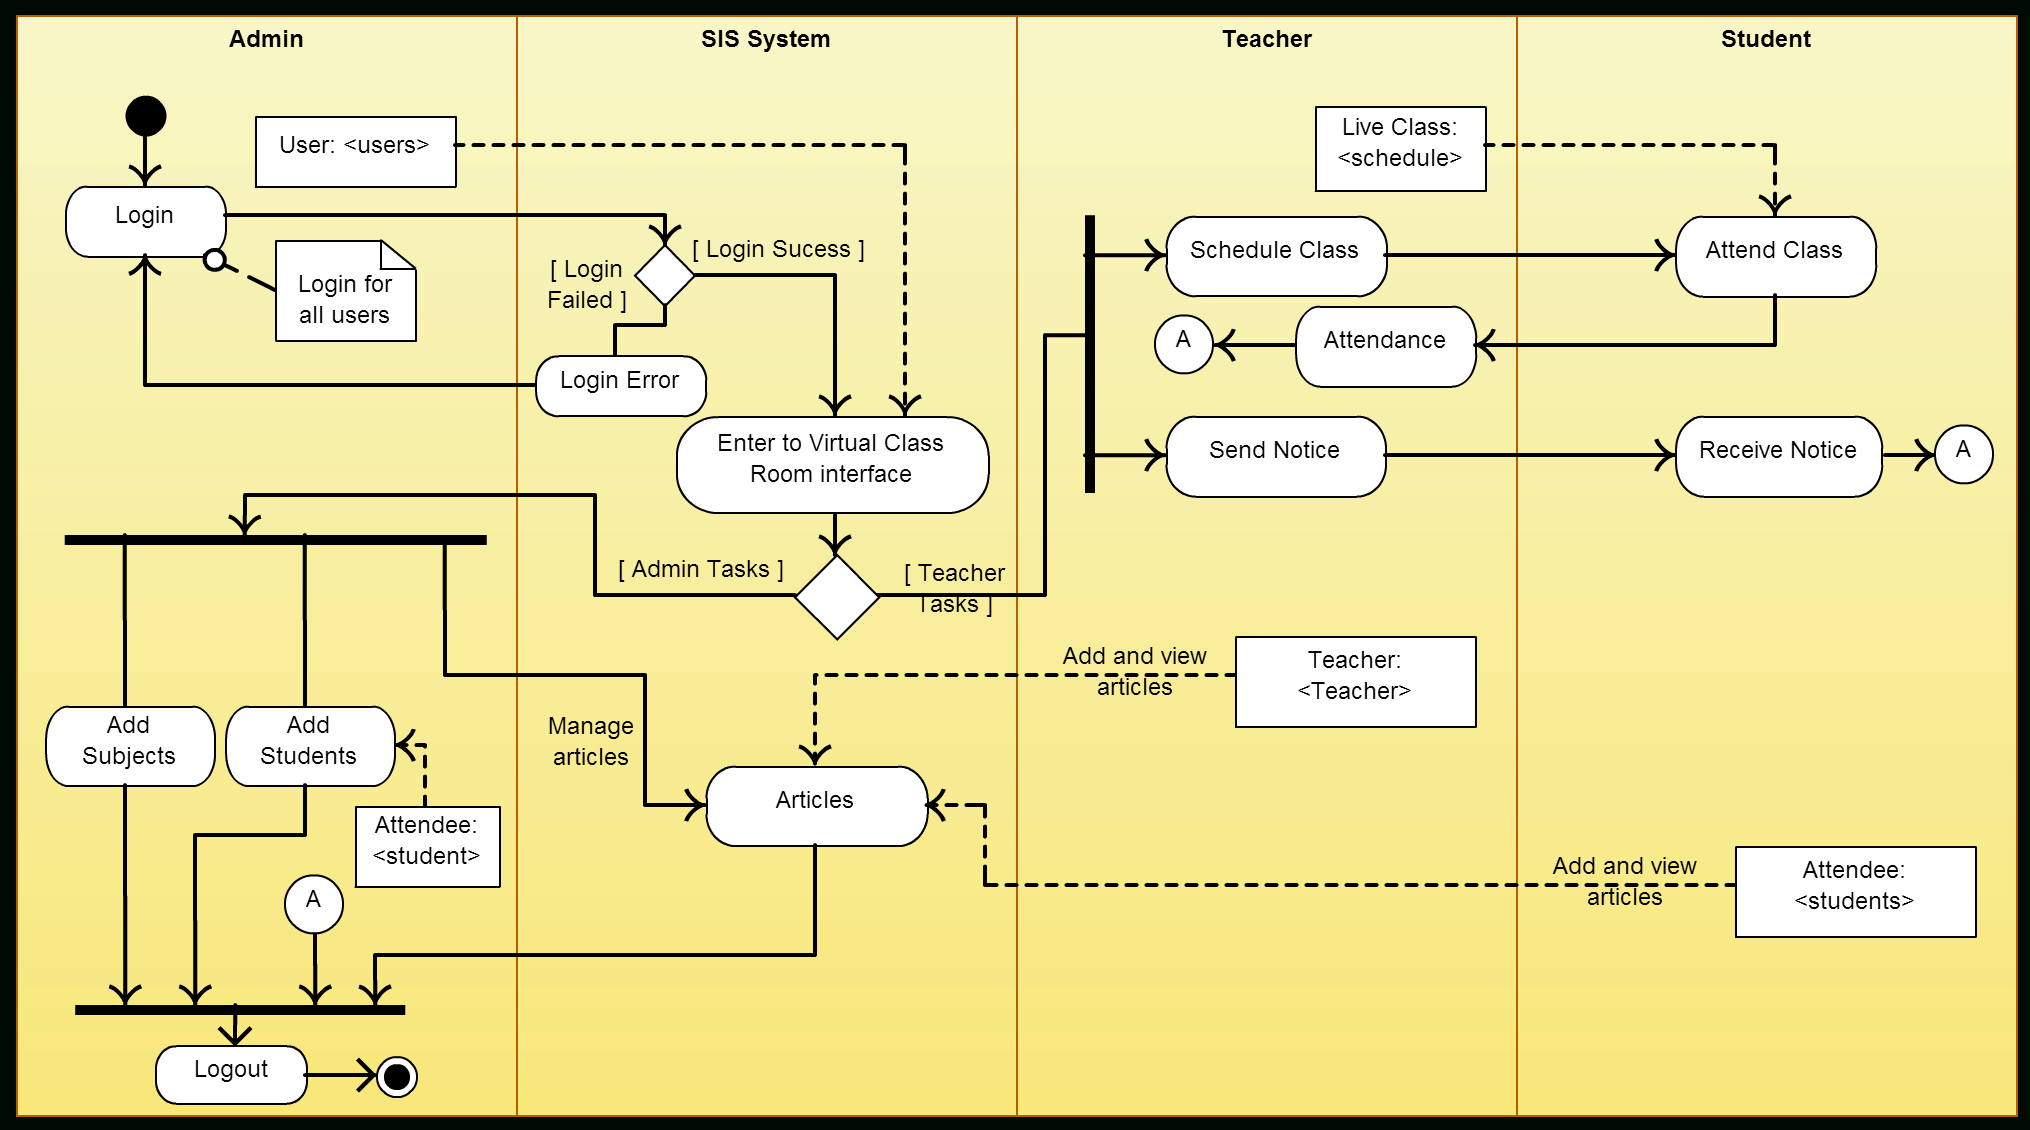 Activity Diagram Templates To Create Efficient Workflows - Creately Blog intended for Er Diagram Examples For College Management System